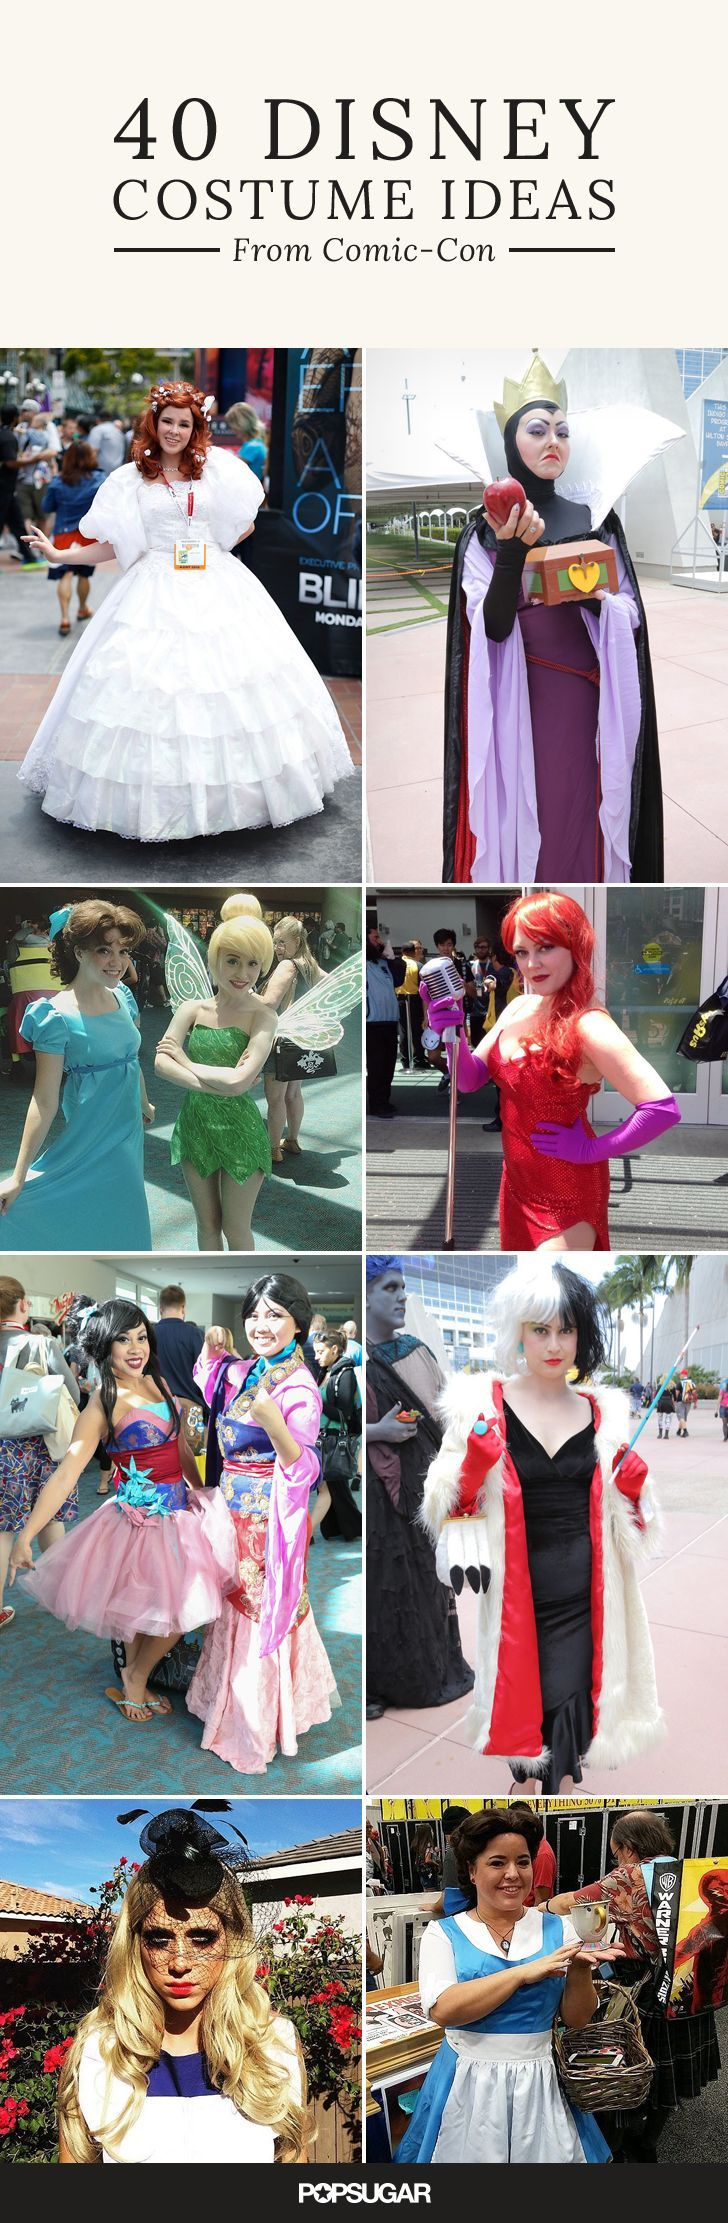 No doubt it's exciting to see all the celebrities who come to Comic-Con, but this year the costumes are what truly excited us. We found all the best Disney cosplay from 2015's big event for the biggest Disney fans out there. Check out what totally impressed us, and start planning your Halloween costume early!